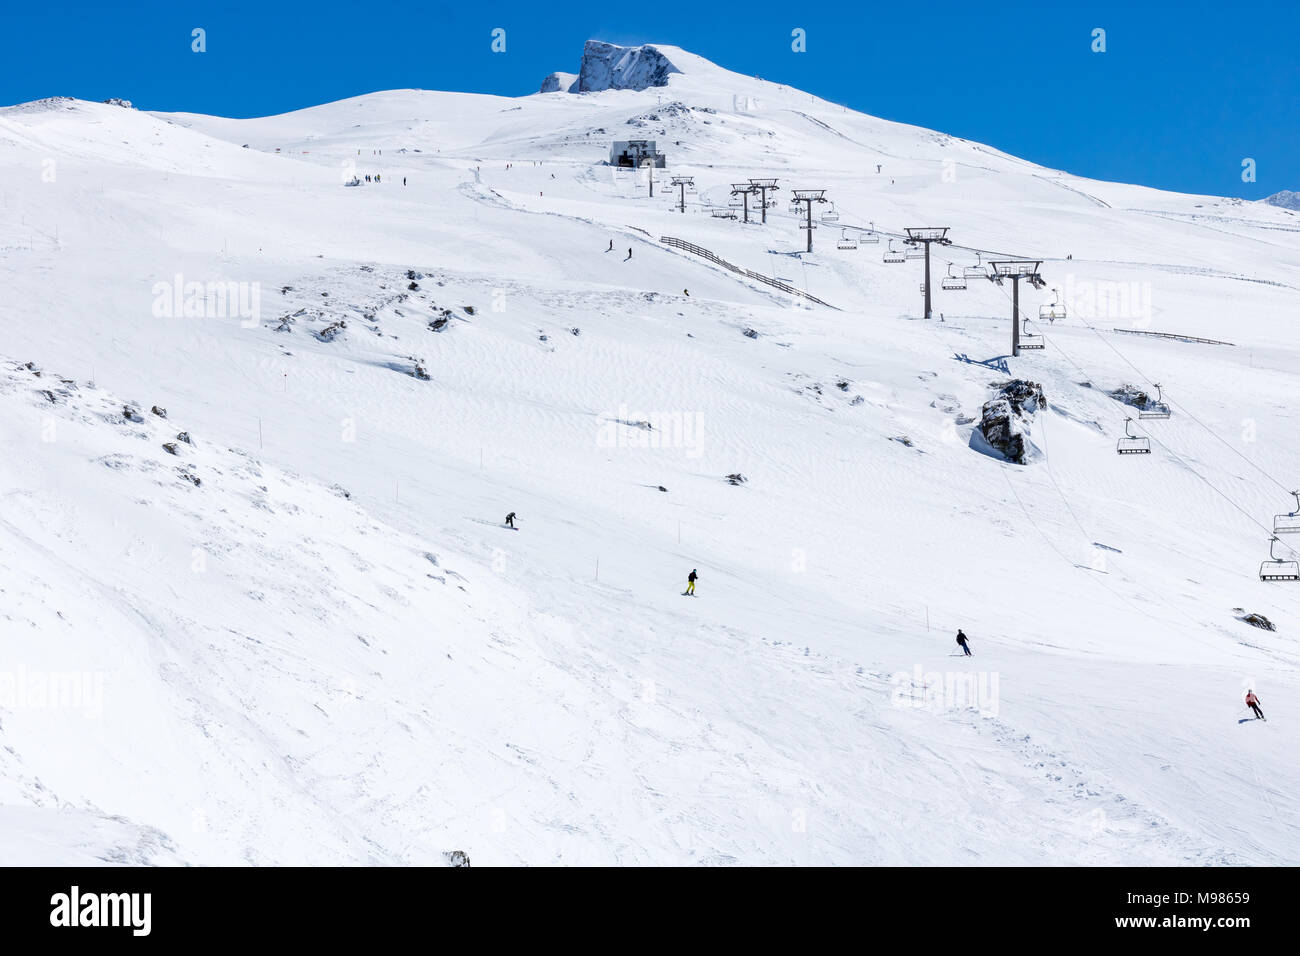 Station de ski de Sierra Nevada. Les personnes pratiquant les sports de neige. Photo Stock